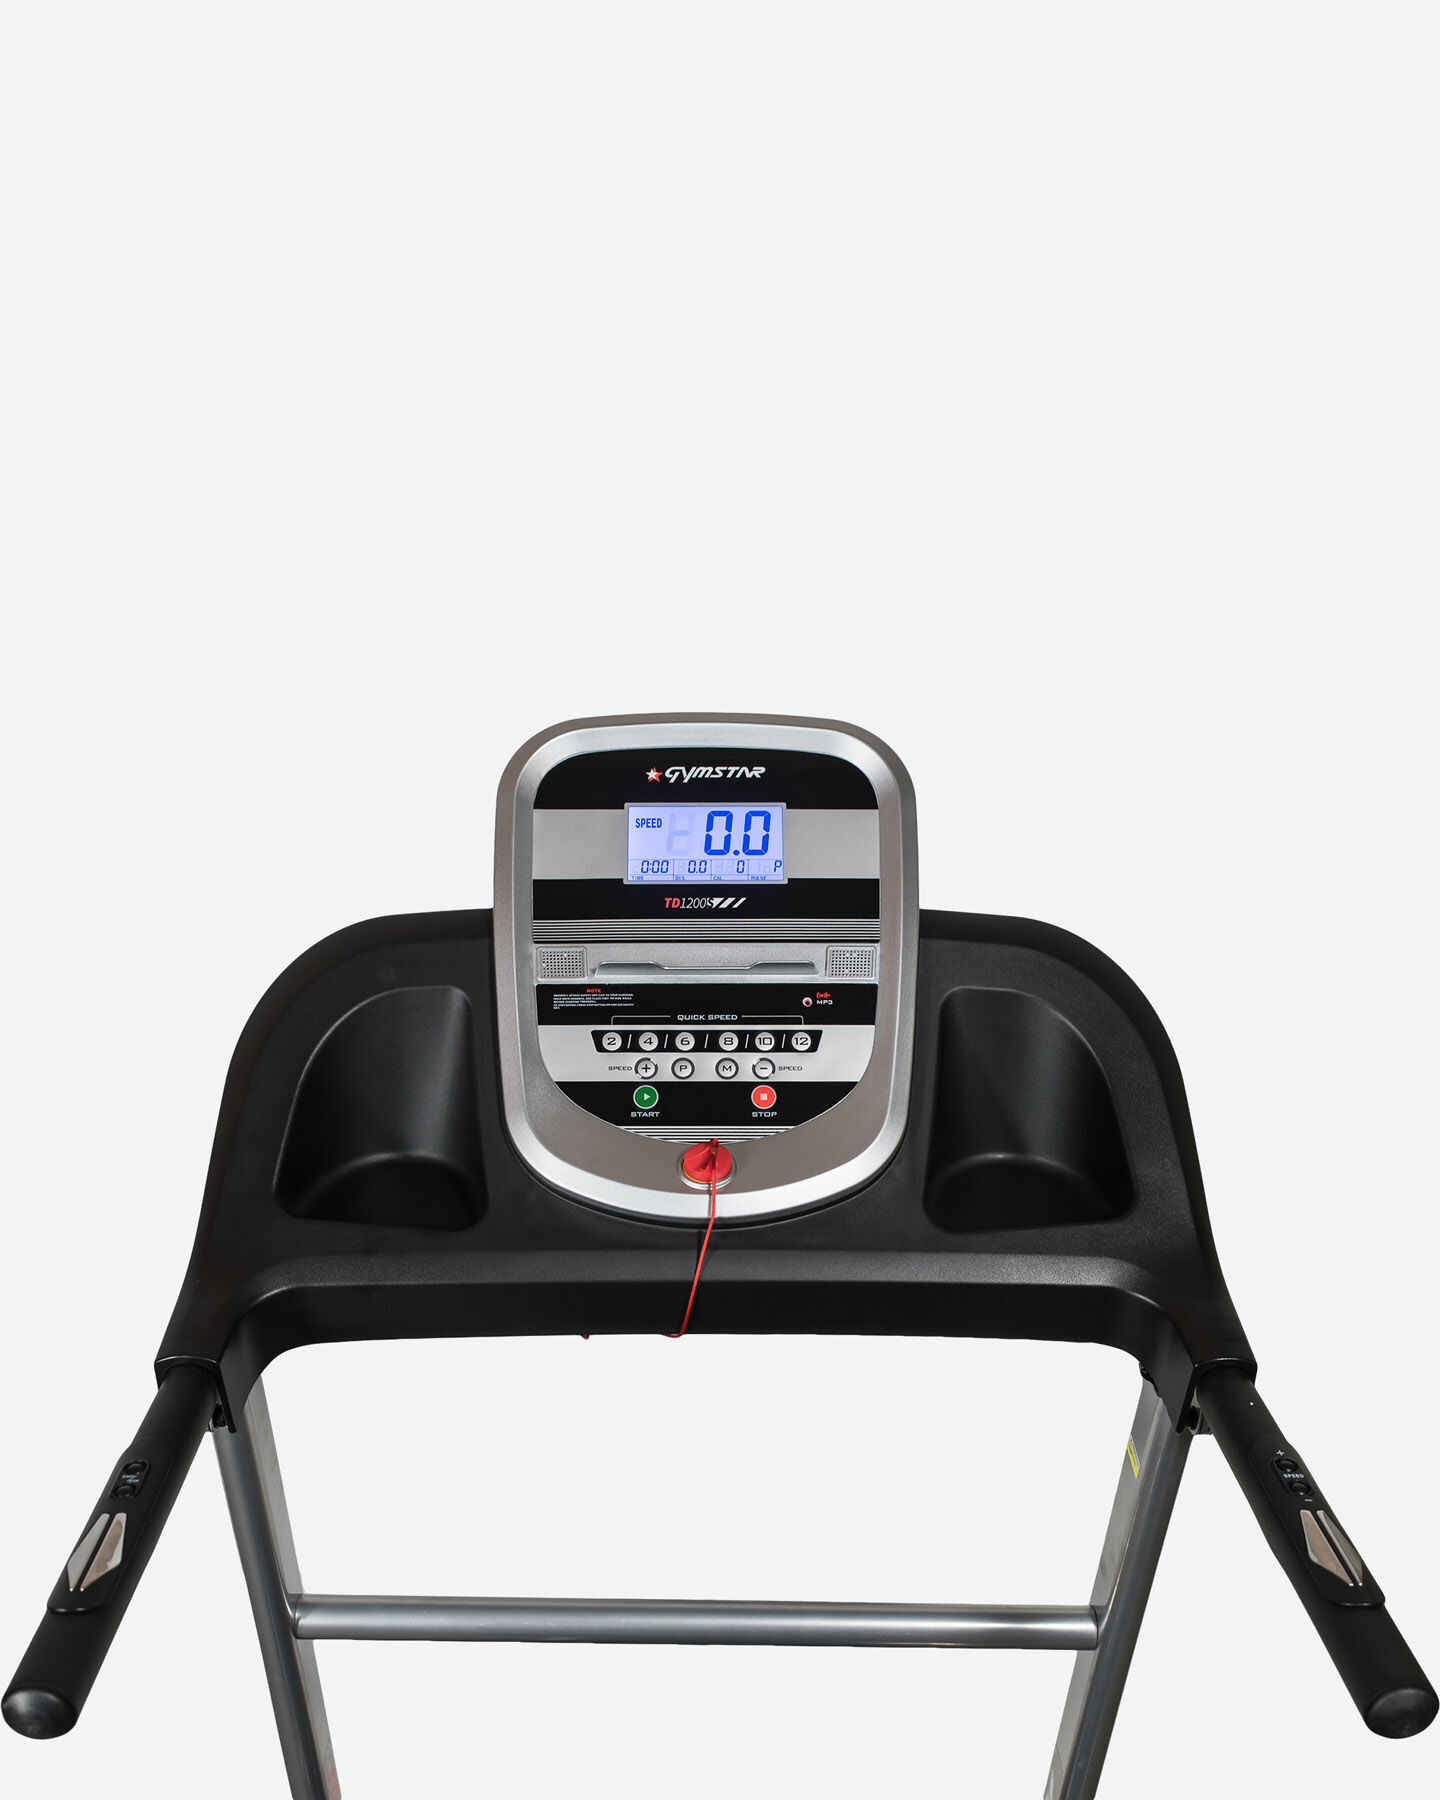 Tapis roulant CARNIELLI GYMSTAR TD 1200S S4031139 1 UNI scatto 2